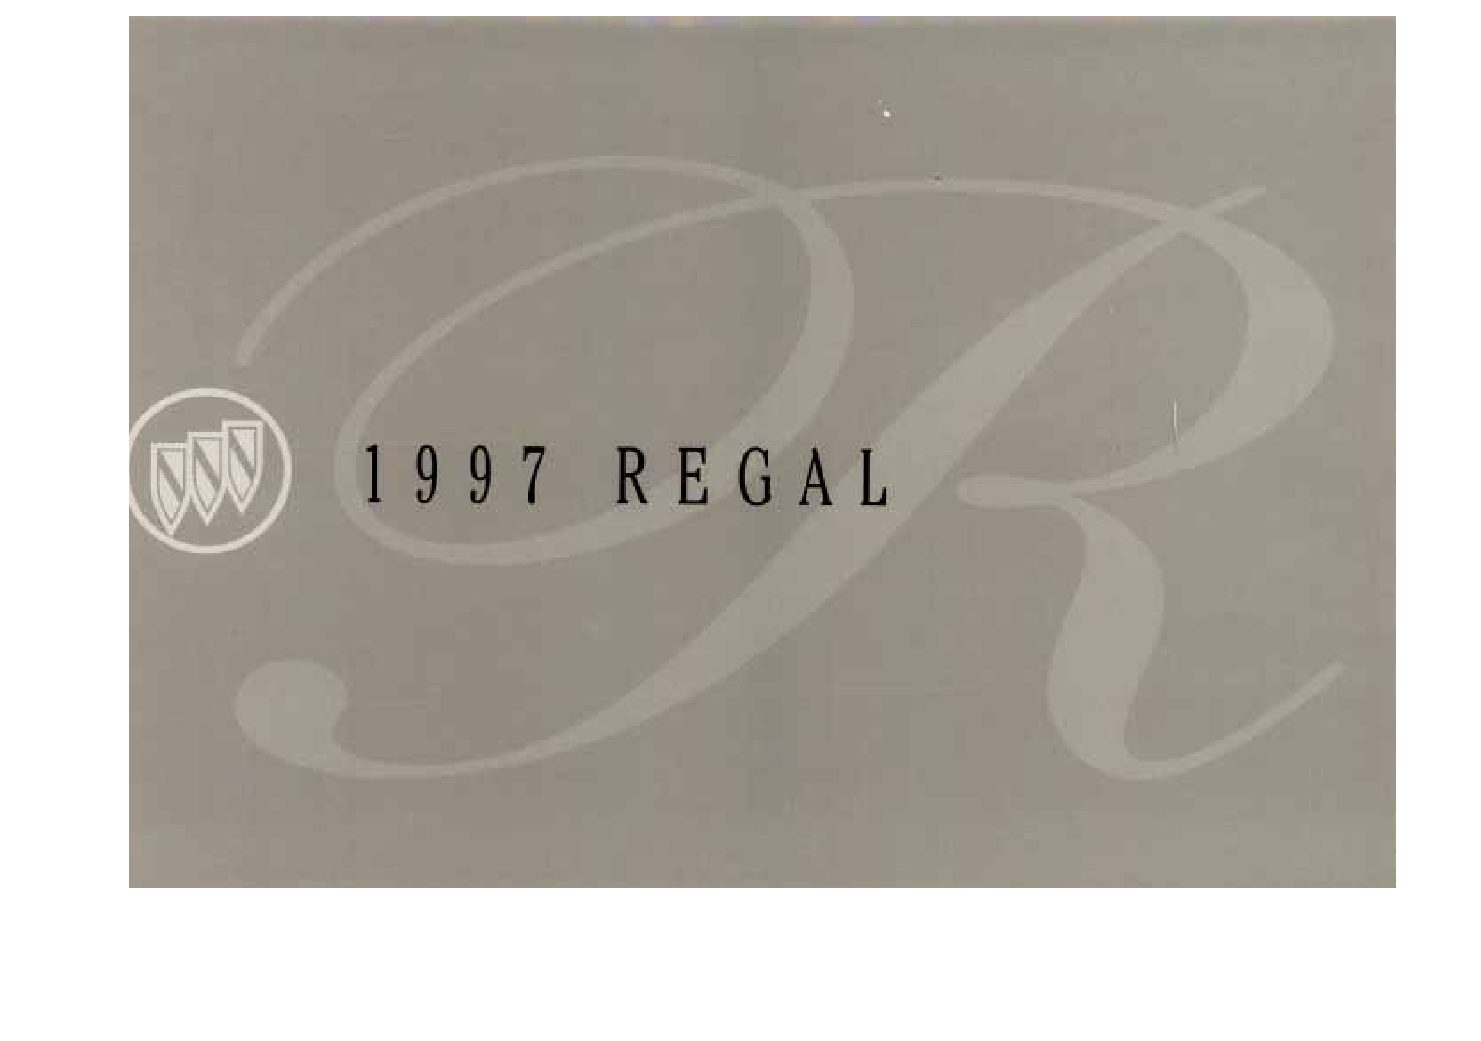 1997 buick regal owners manual just give me the damn manual 1997 buick regal owners manual publicscrutiny Choice Image